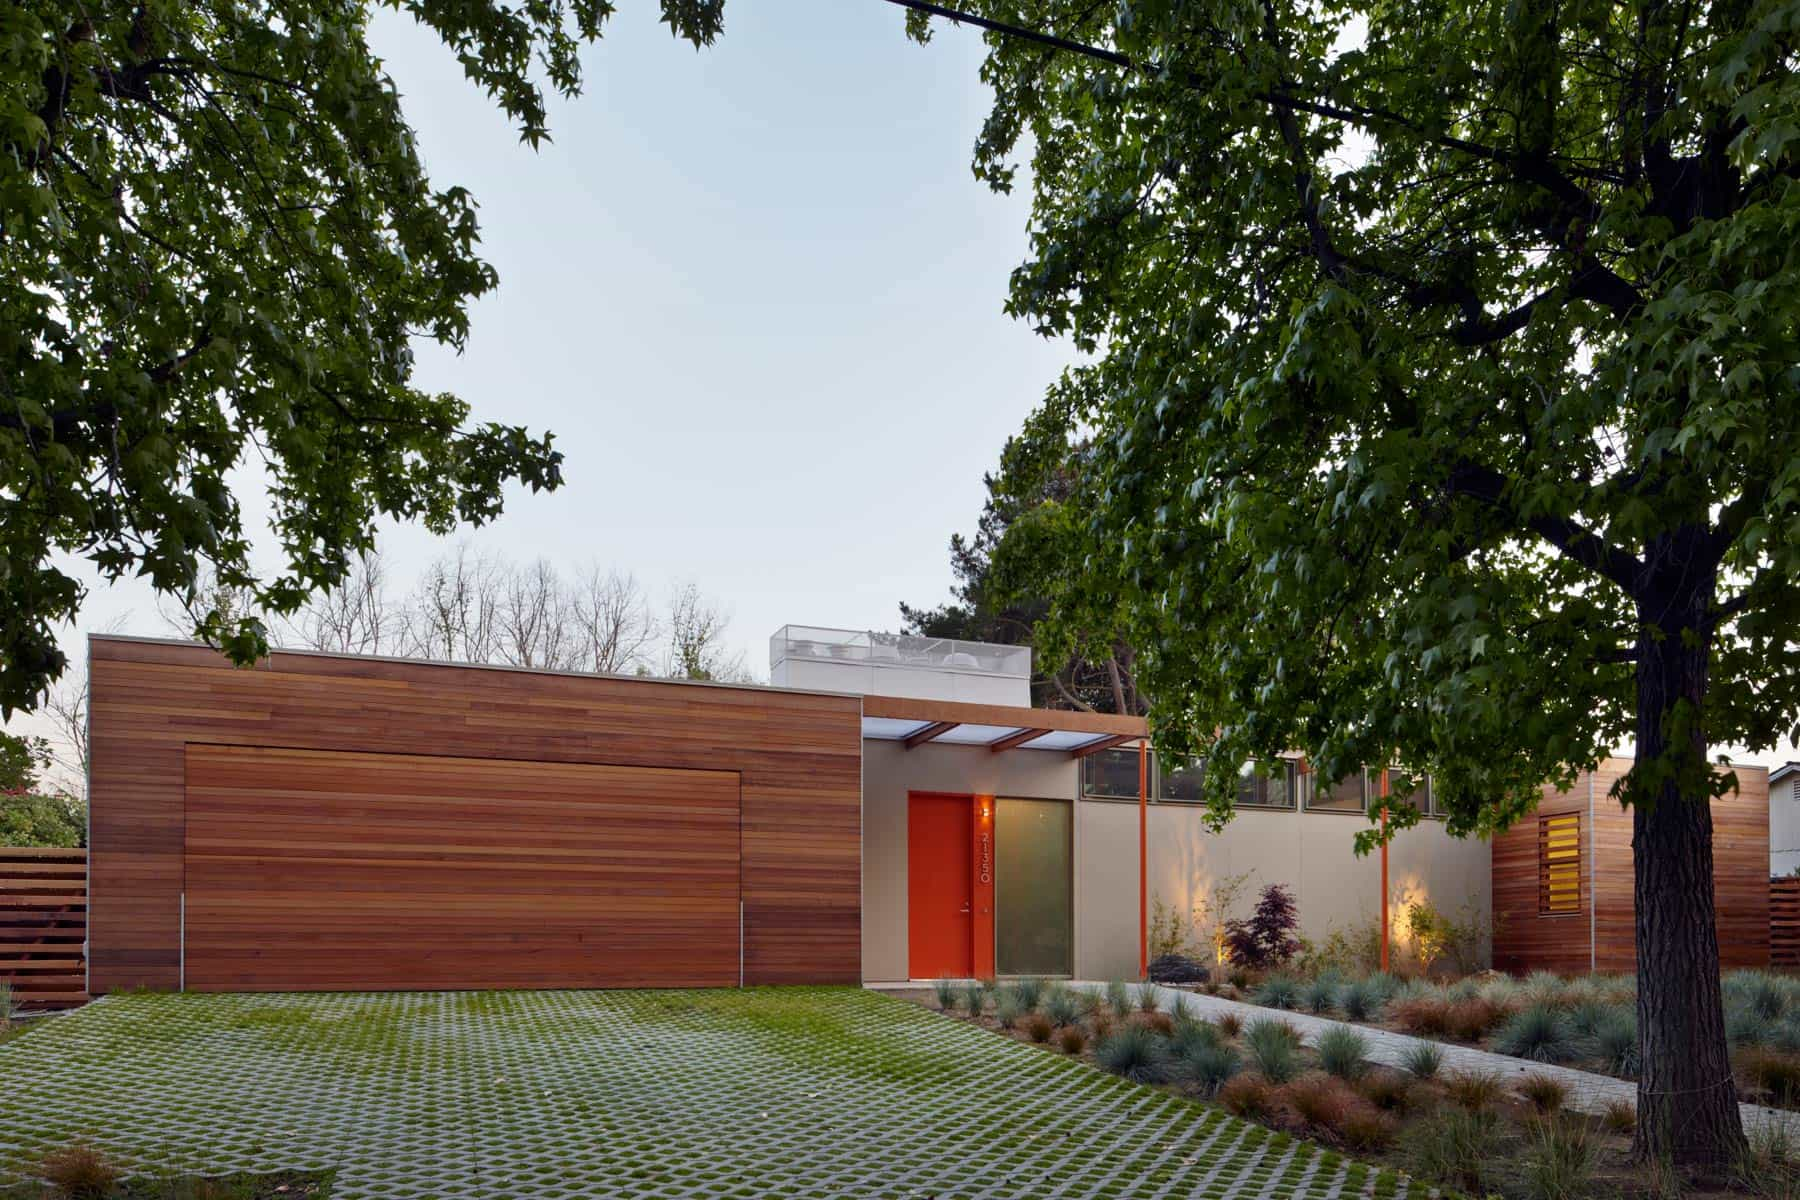 case study house inspired modern house - LMSA architects - outside